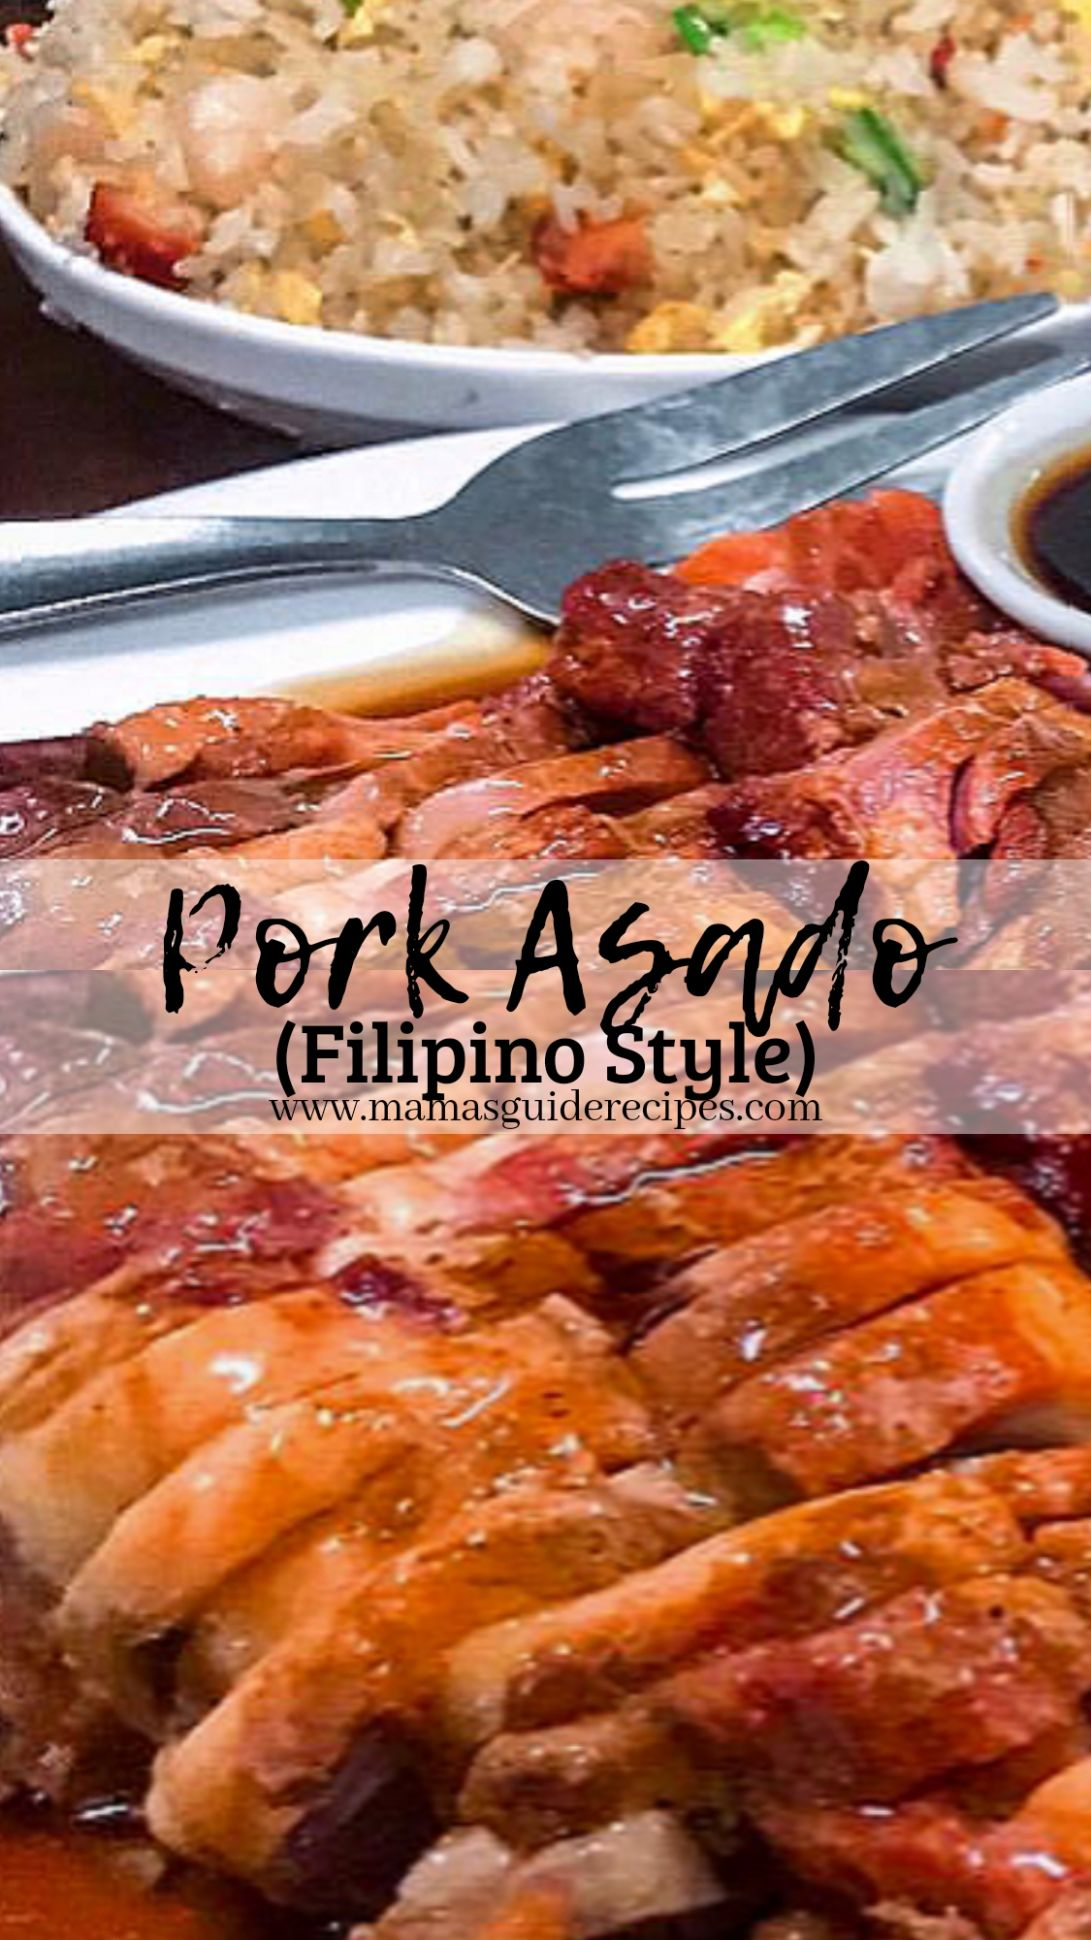 Pork Asado - Mama's Guide Recipes